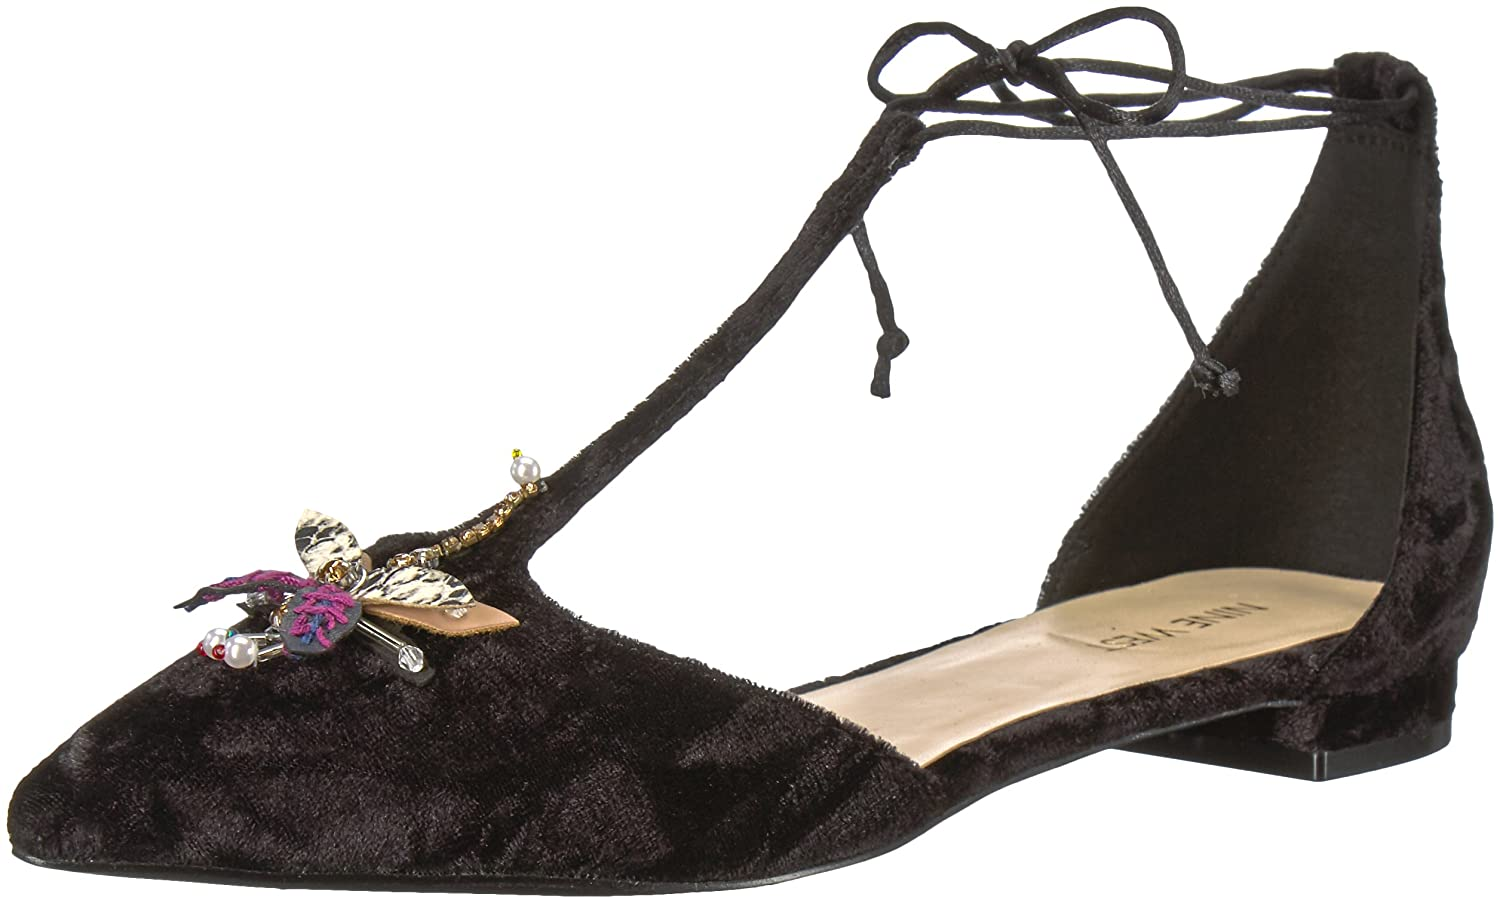 Nine West Women's Amethyst Fabric Pump B076B4PG49 11 B(M) US|Black